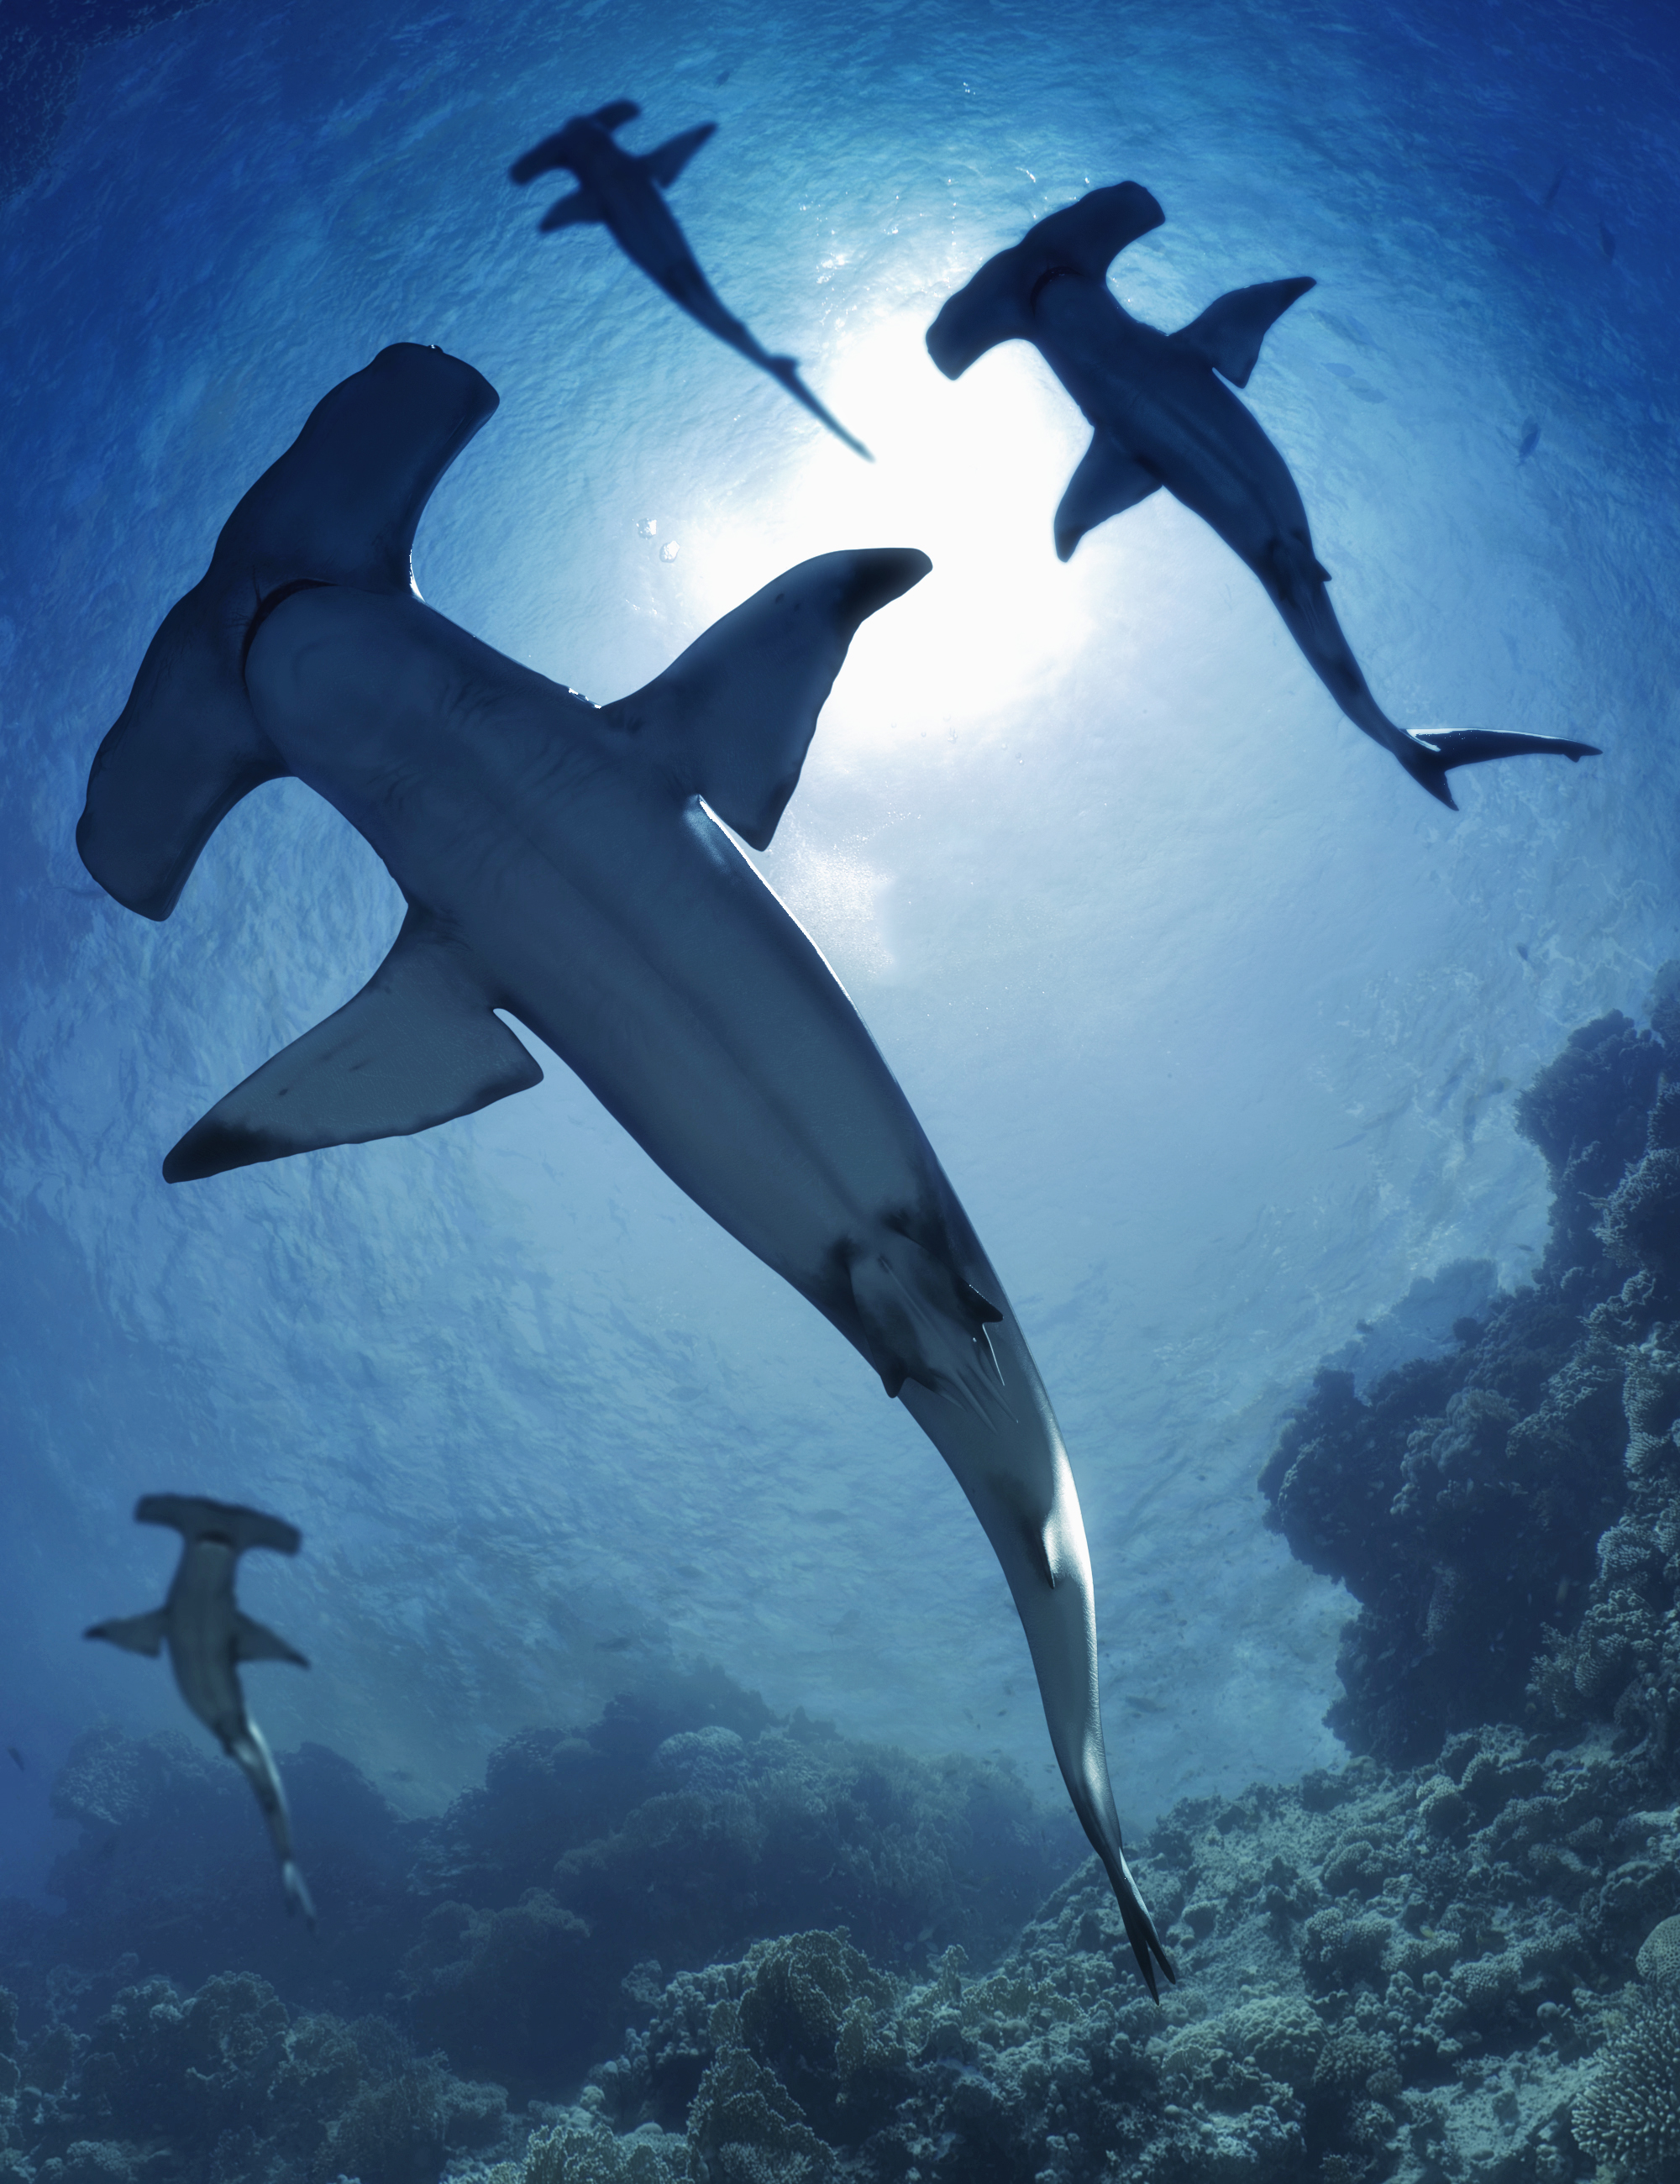 Sharks by AM: Hammerhead by: Alessandro_AM, 3D Models by Daz 3D